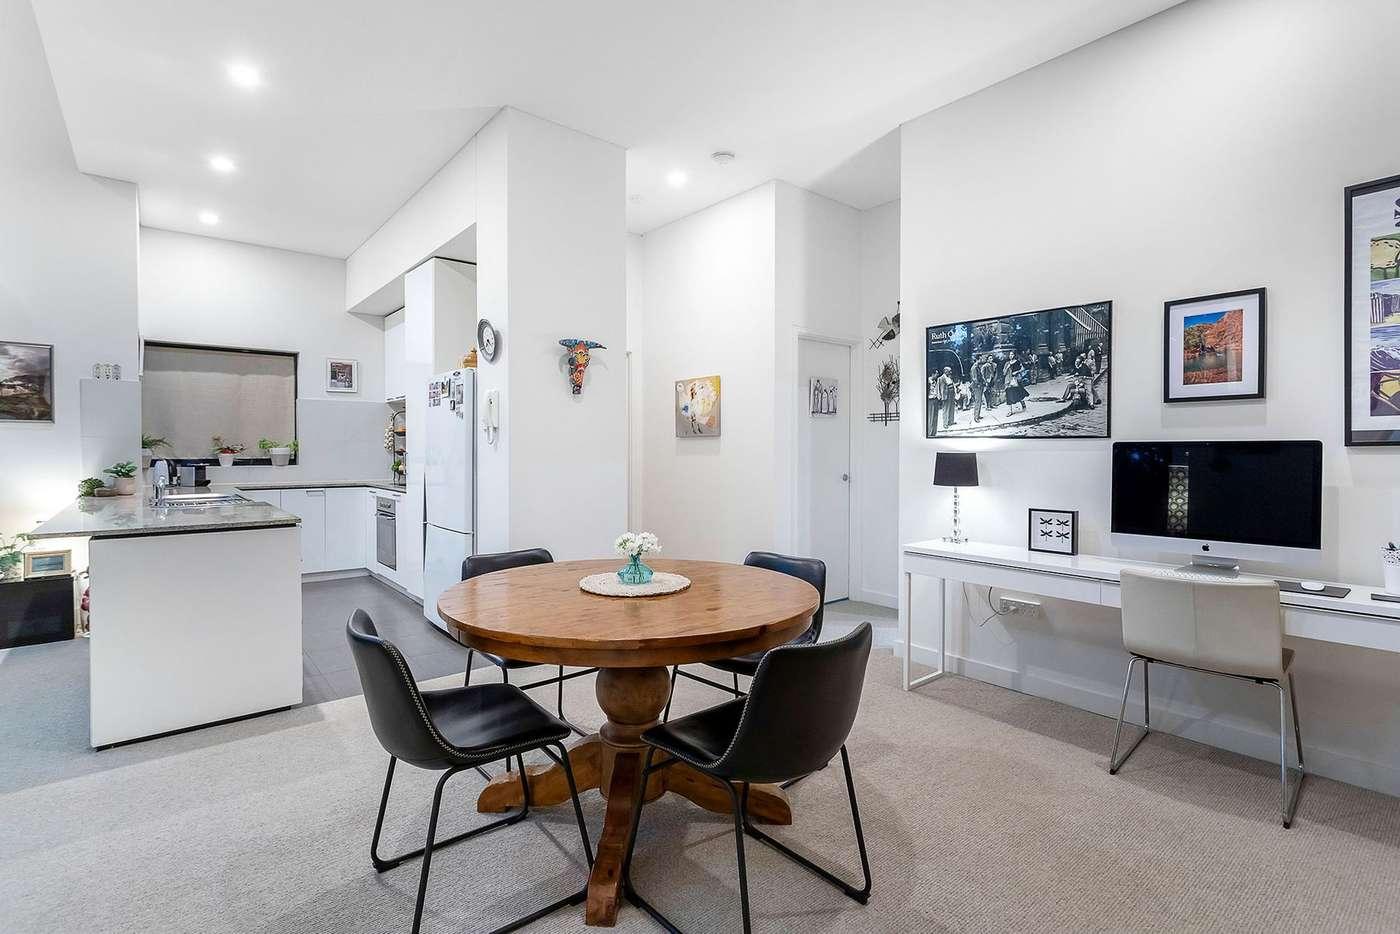 Fifth view of Homely apartment listing, 18/124 Mounts Bay Road, Perth WA 6000